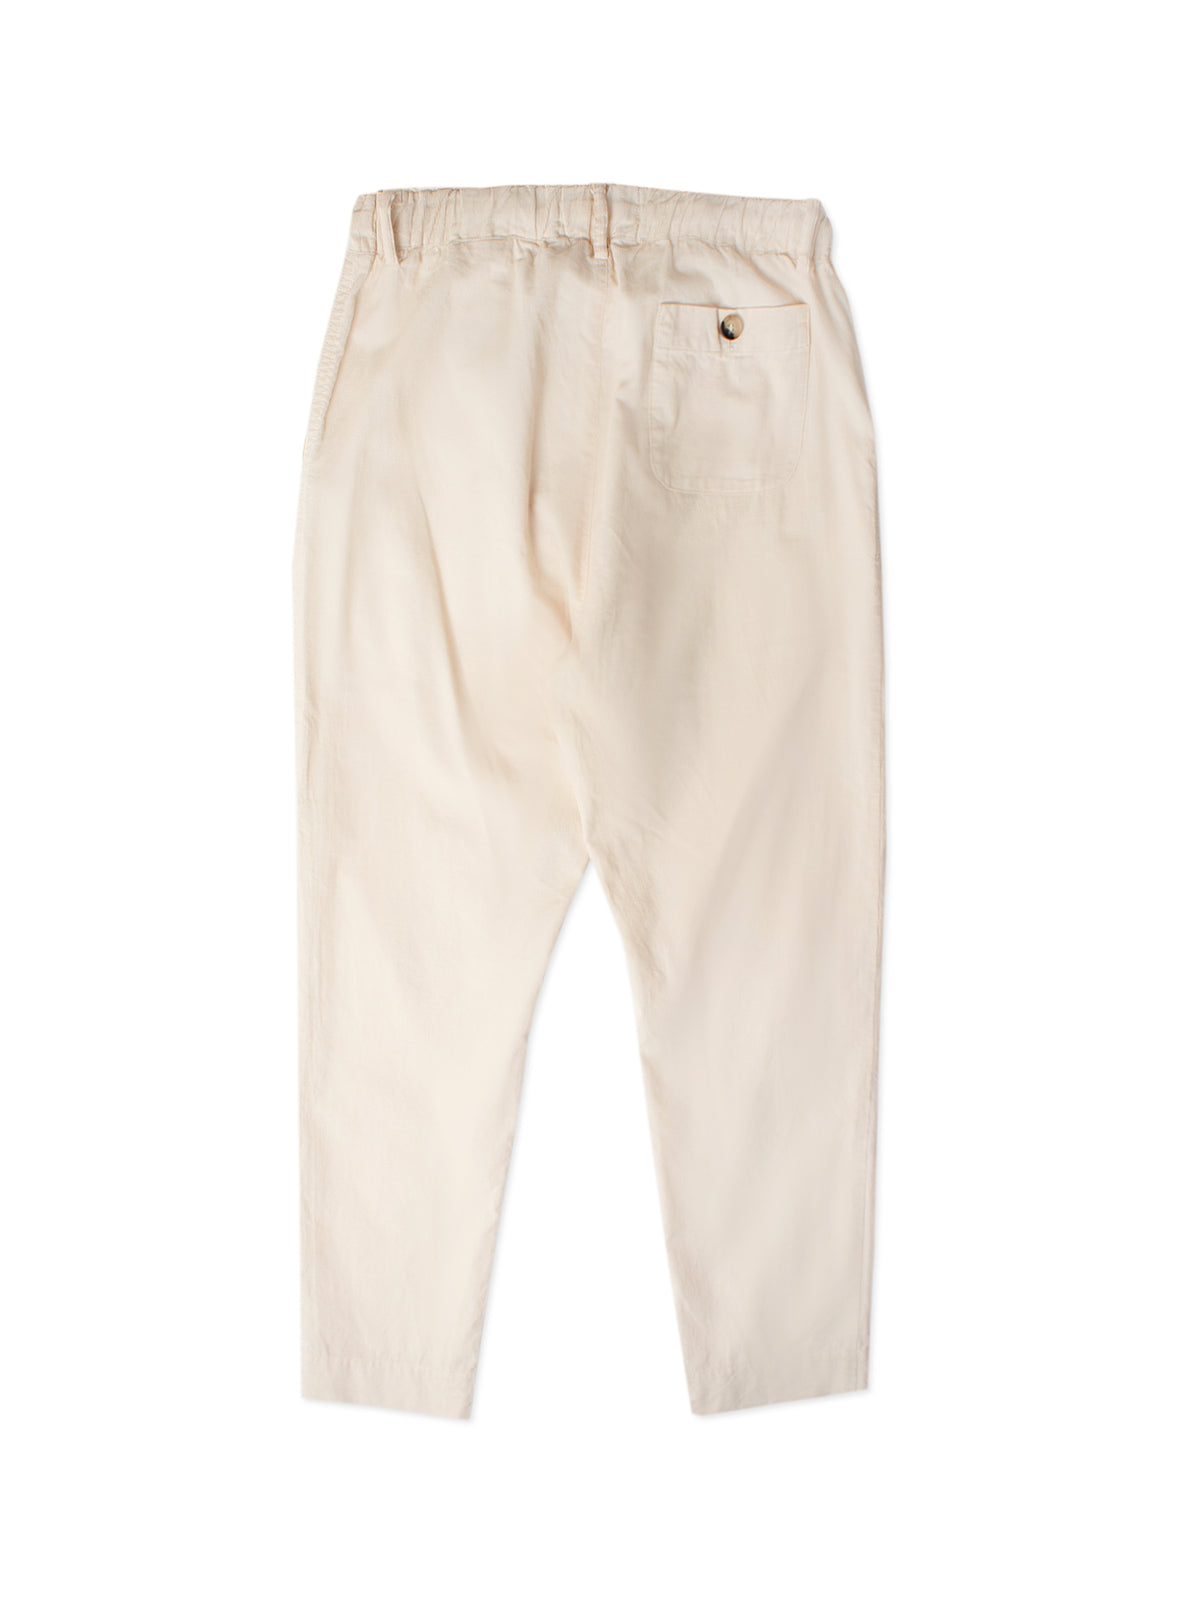 Inverness Trouser - Off-White Brisbane Moss Cotton Cord